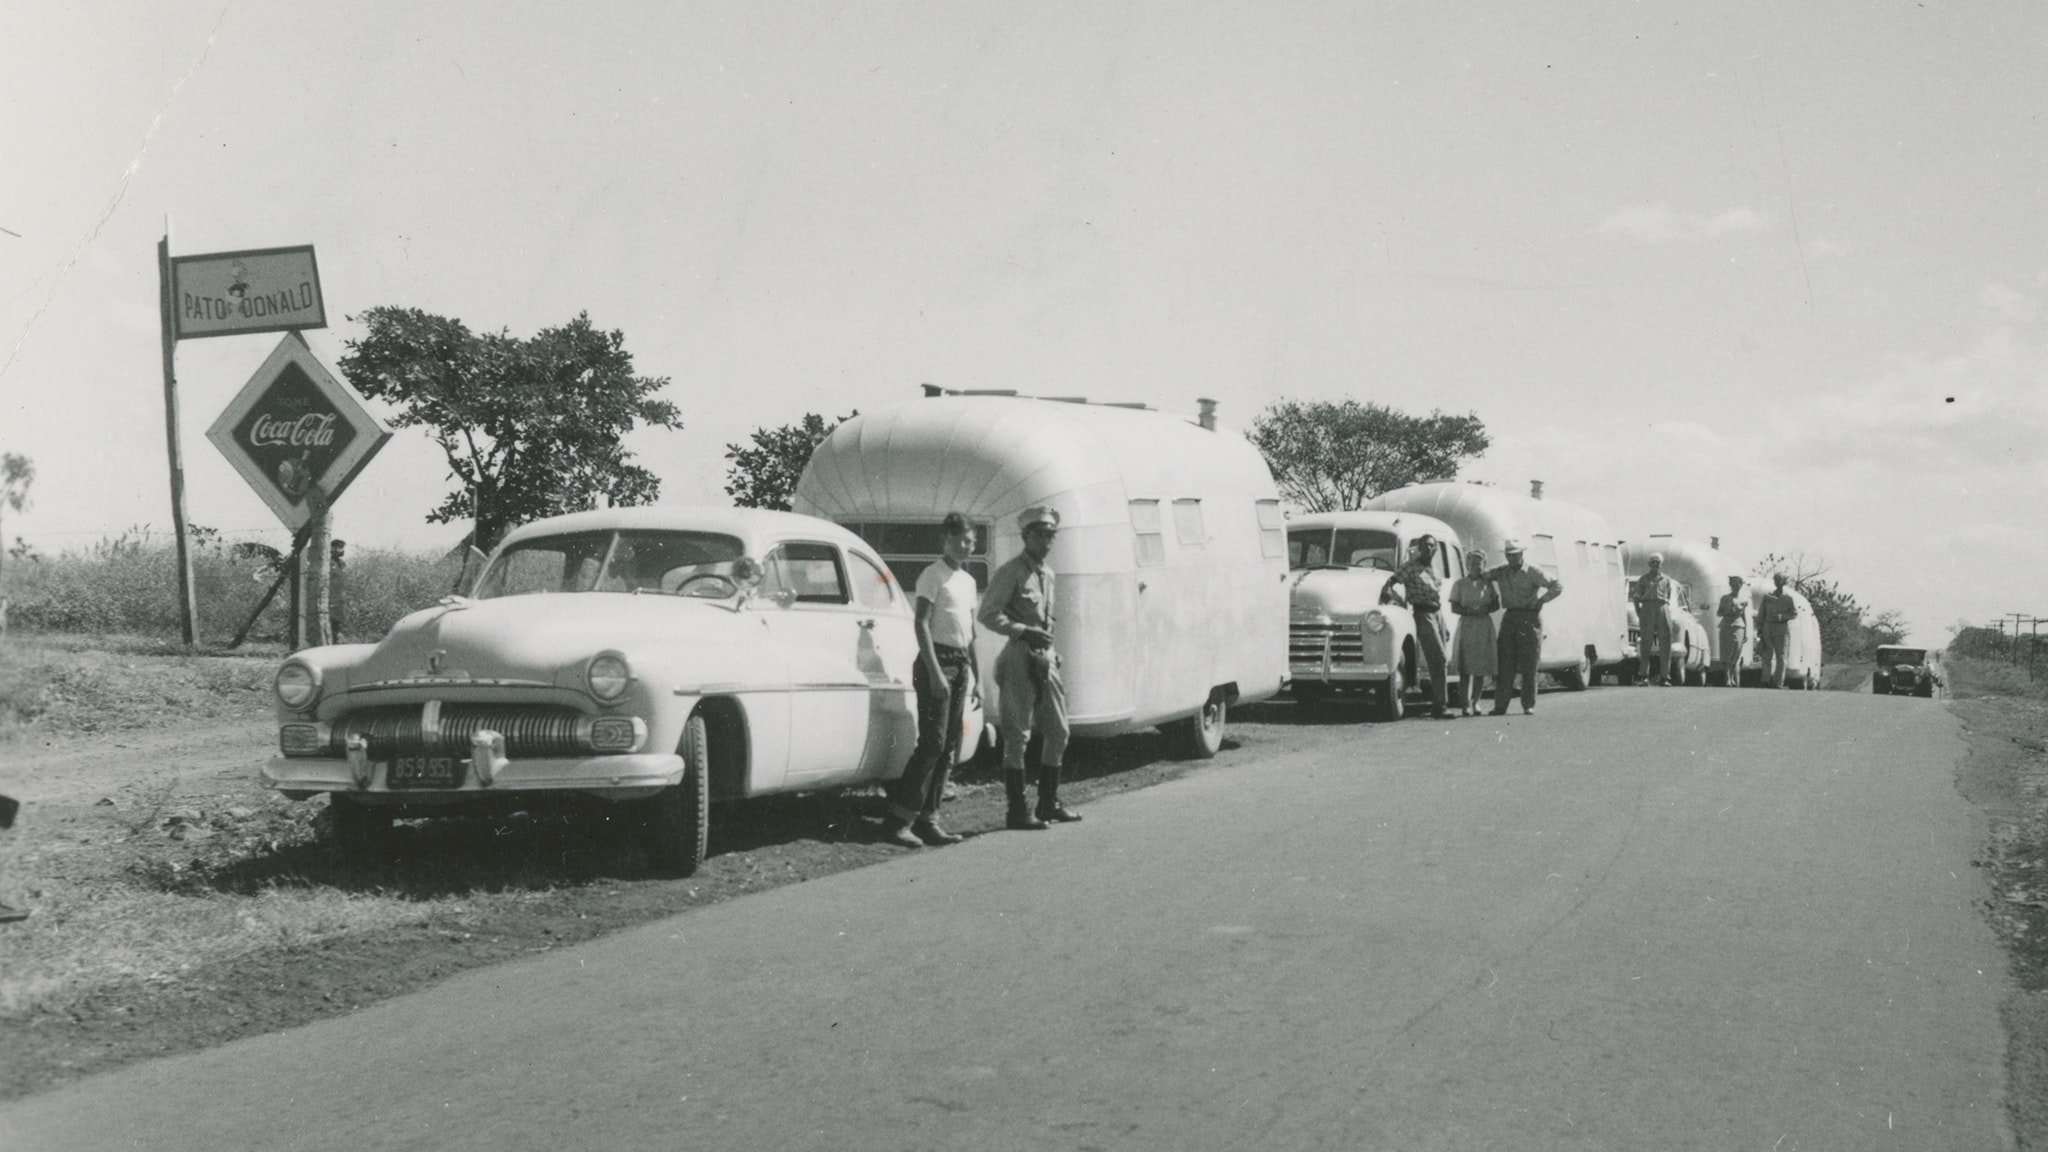 Airstream-Wally-Byam-First-Caravan-Mexico-Central-America-1951-1952-Header